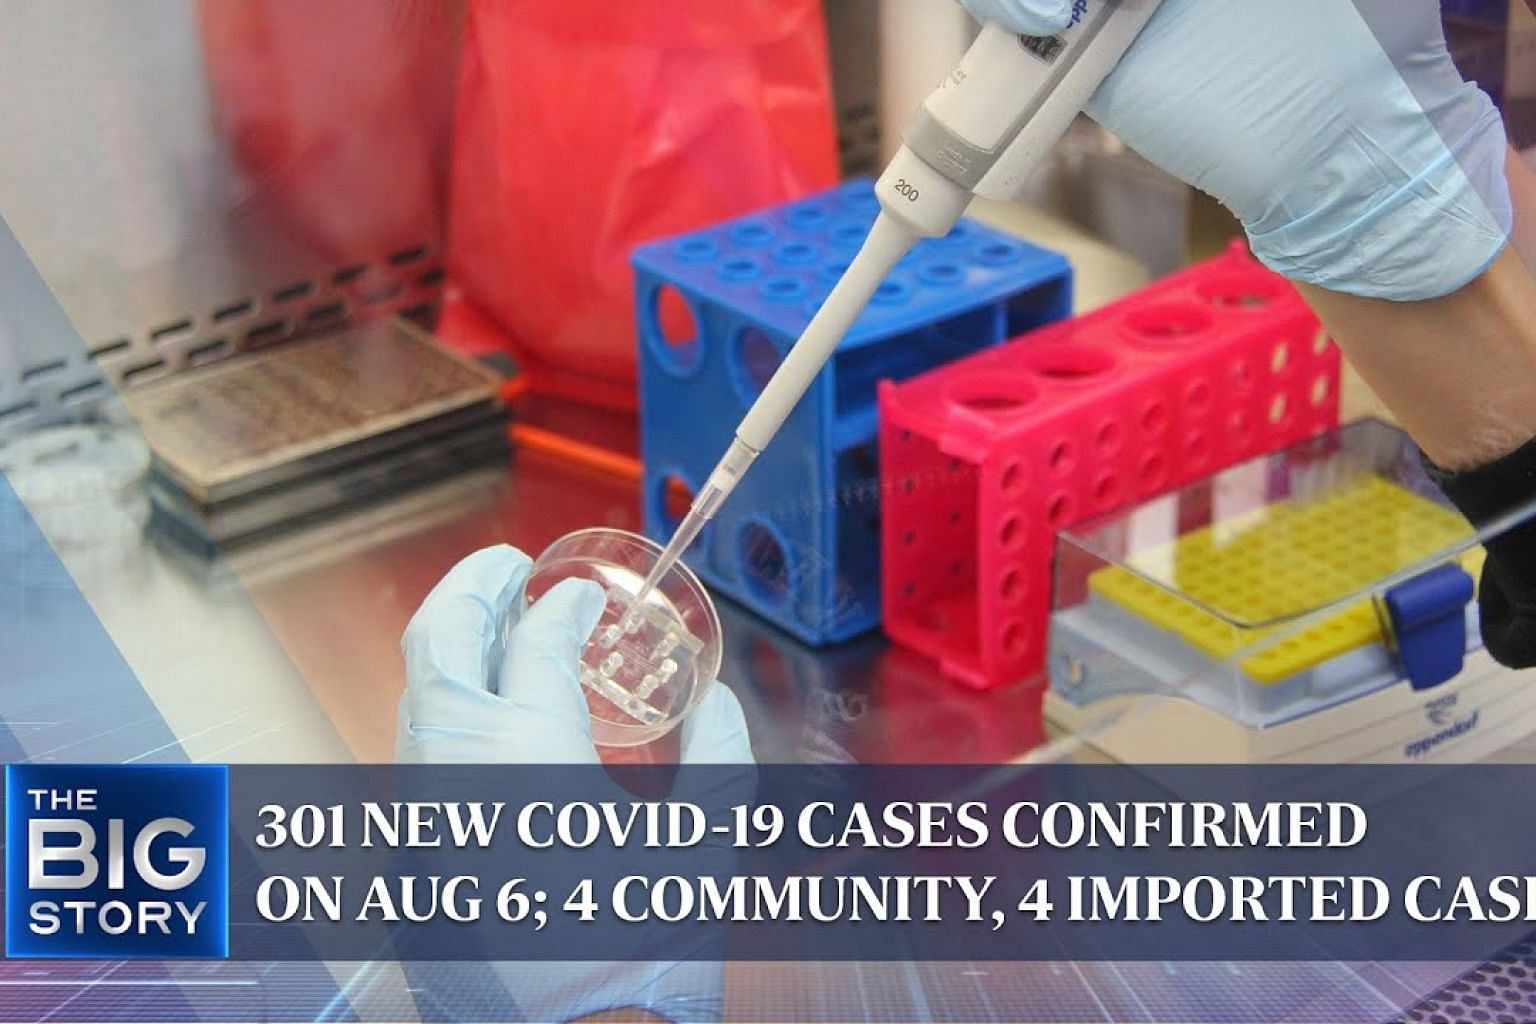 301 new Covid-19 cases confirmed on Aug 6; 4 community, 4 imported cases | THE BIG STORY